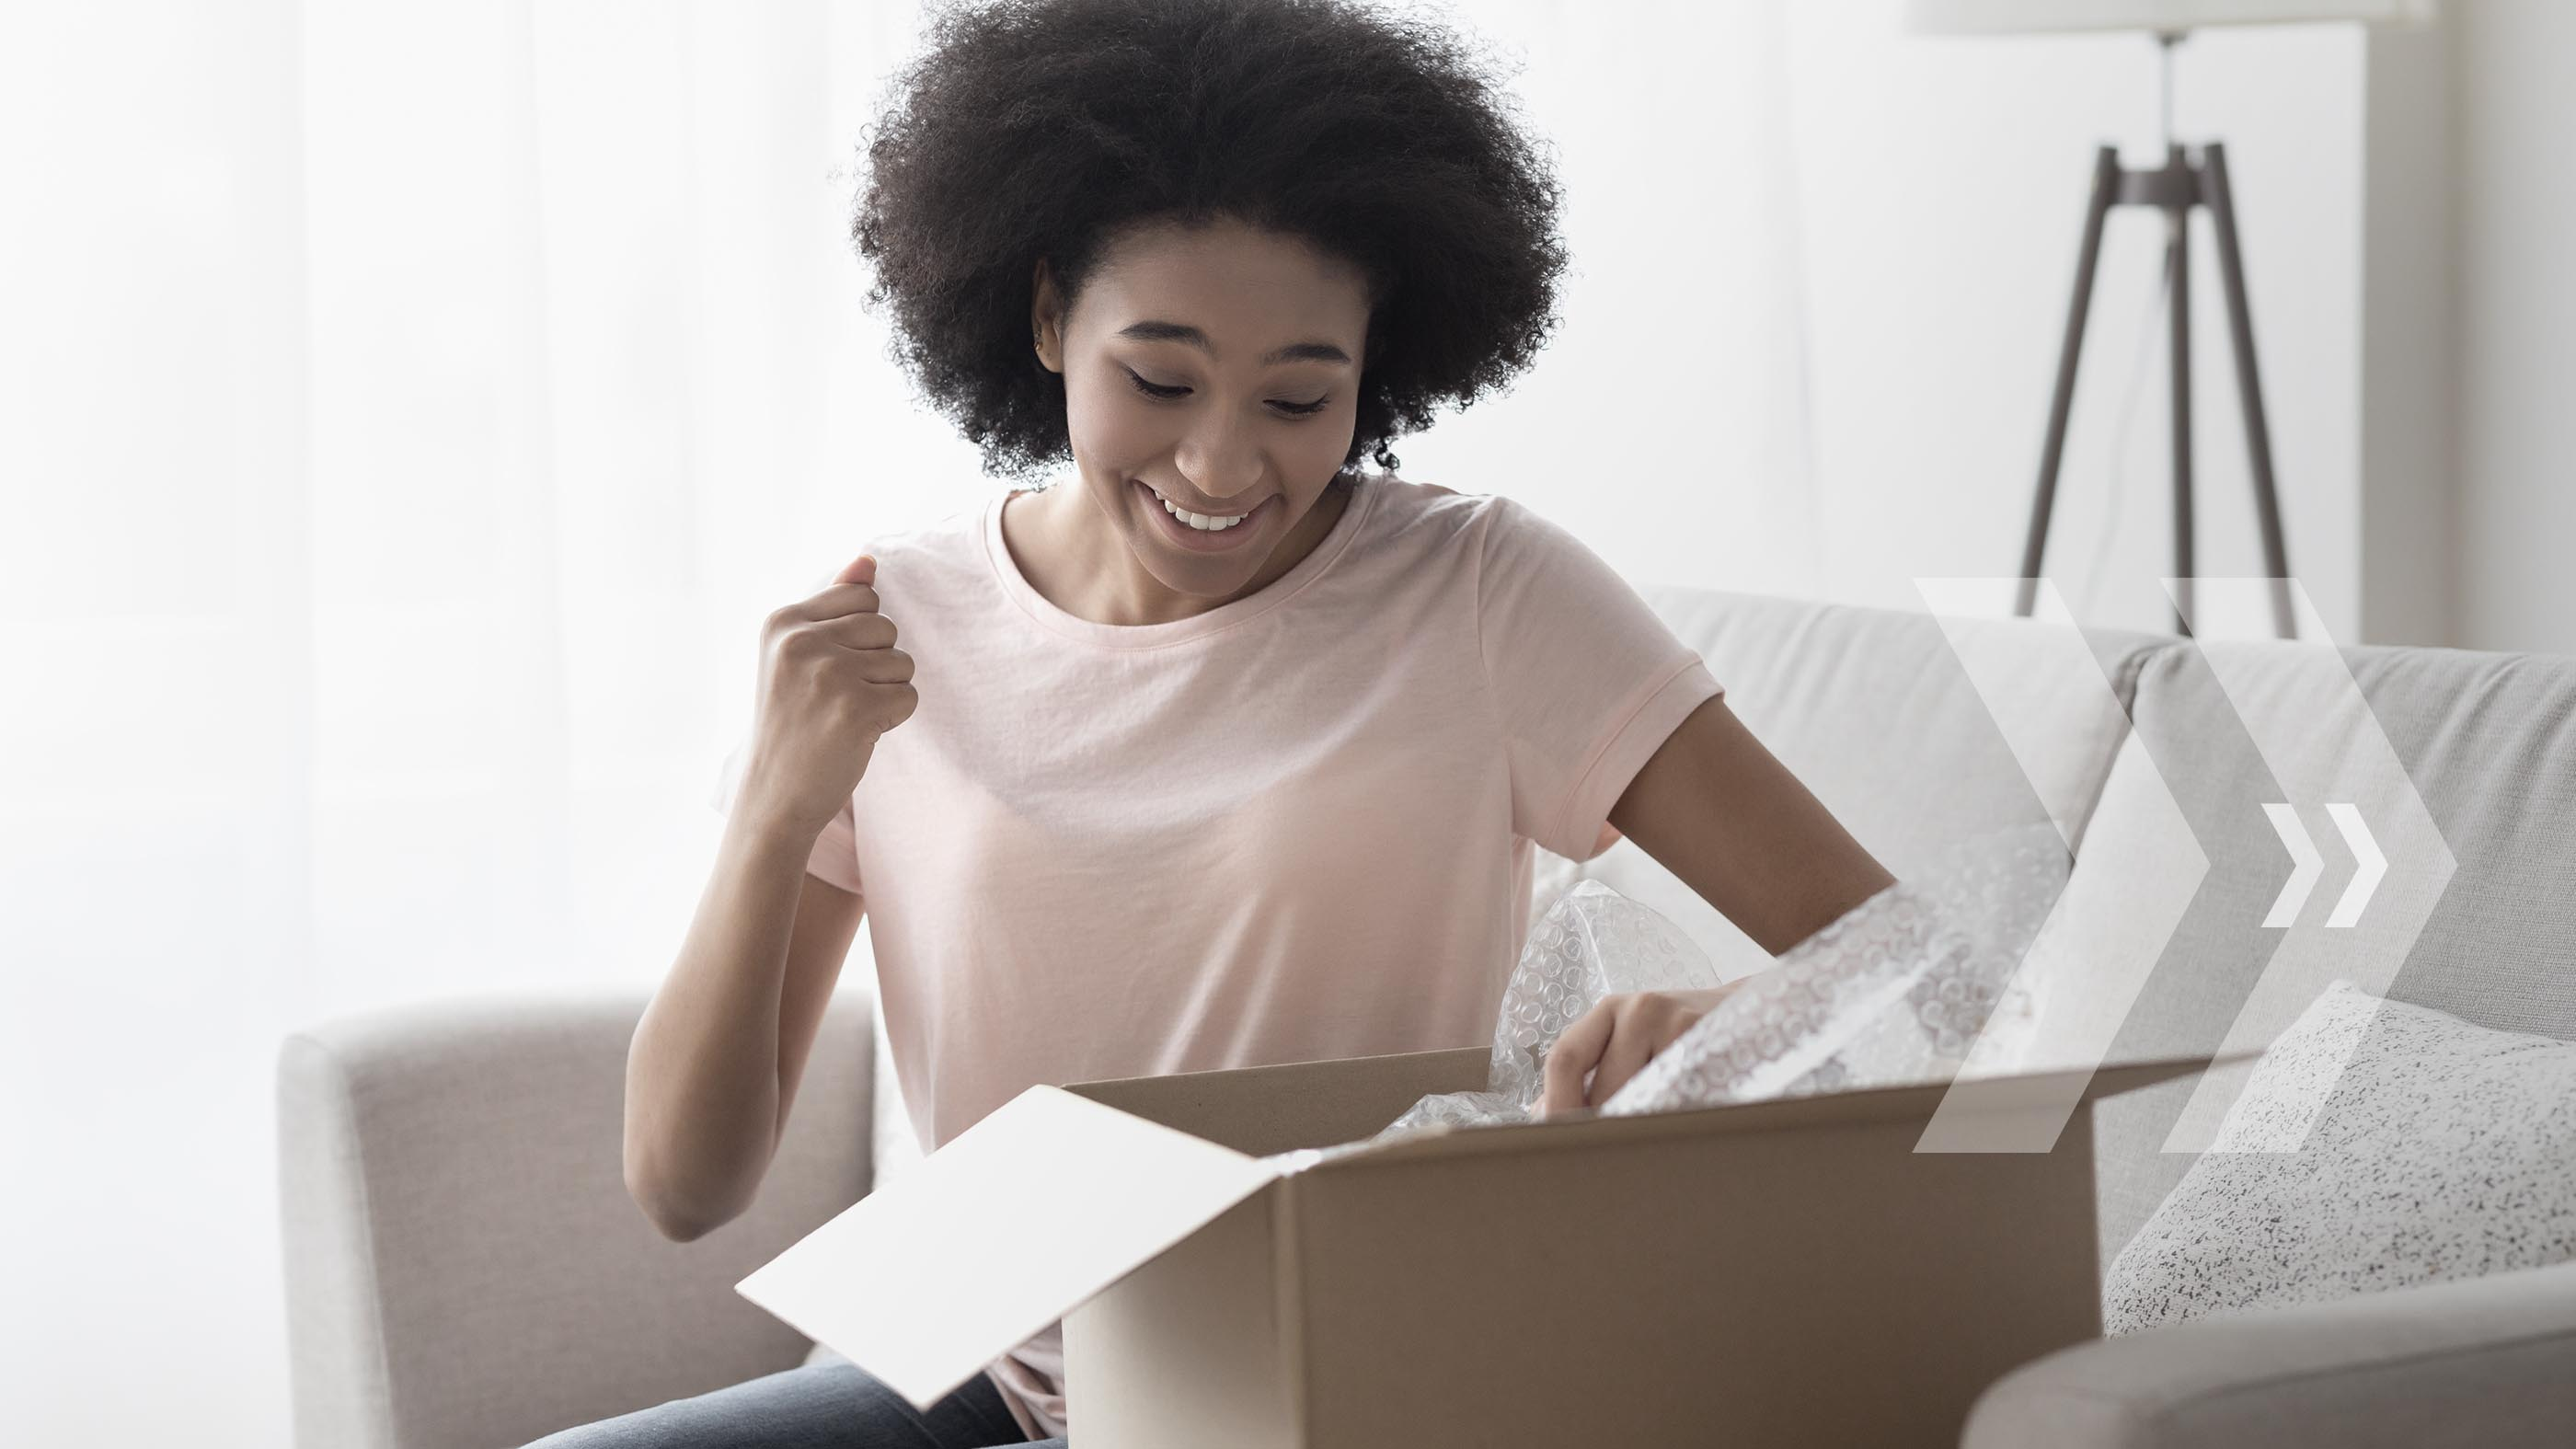 Retail in the Next 12 Months